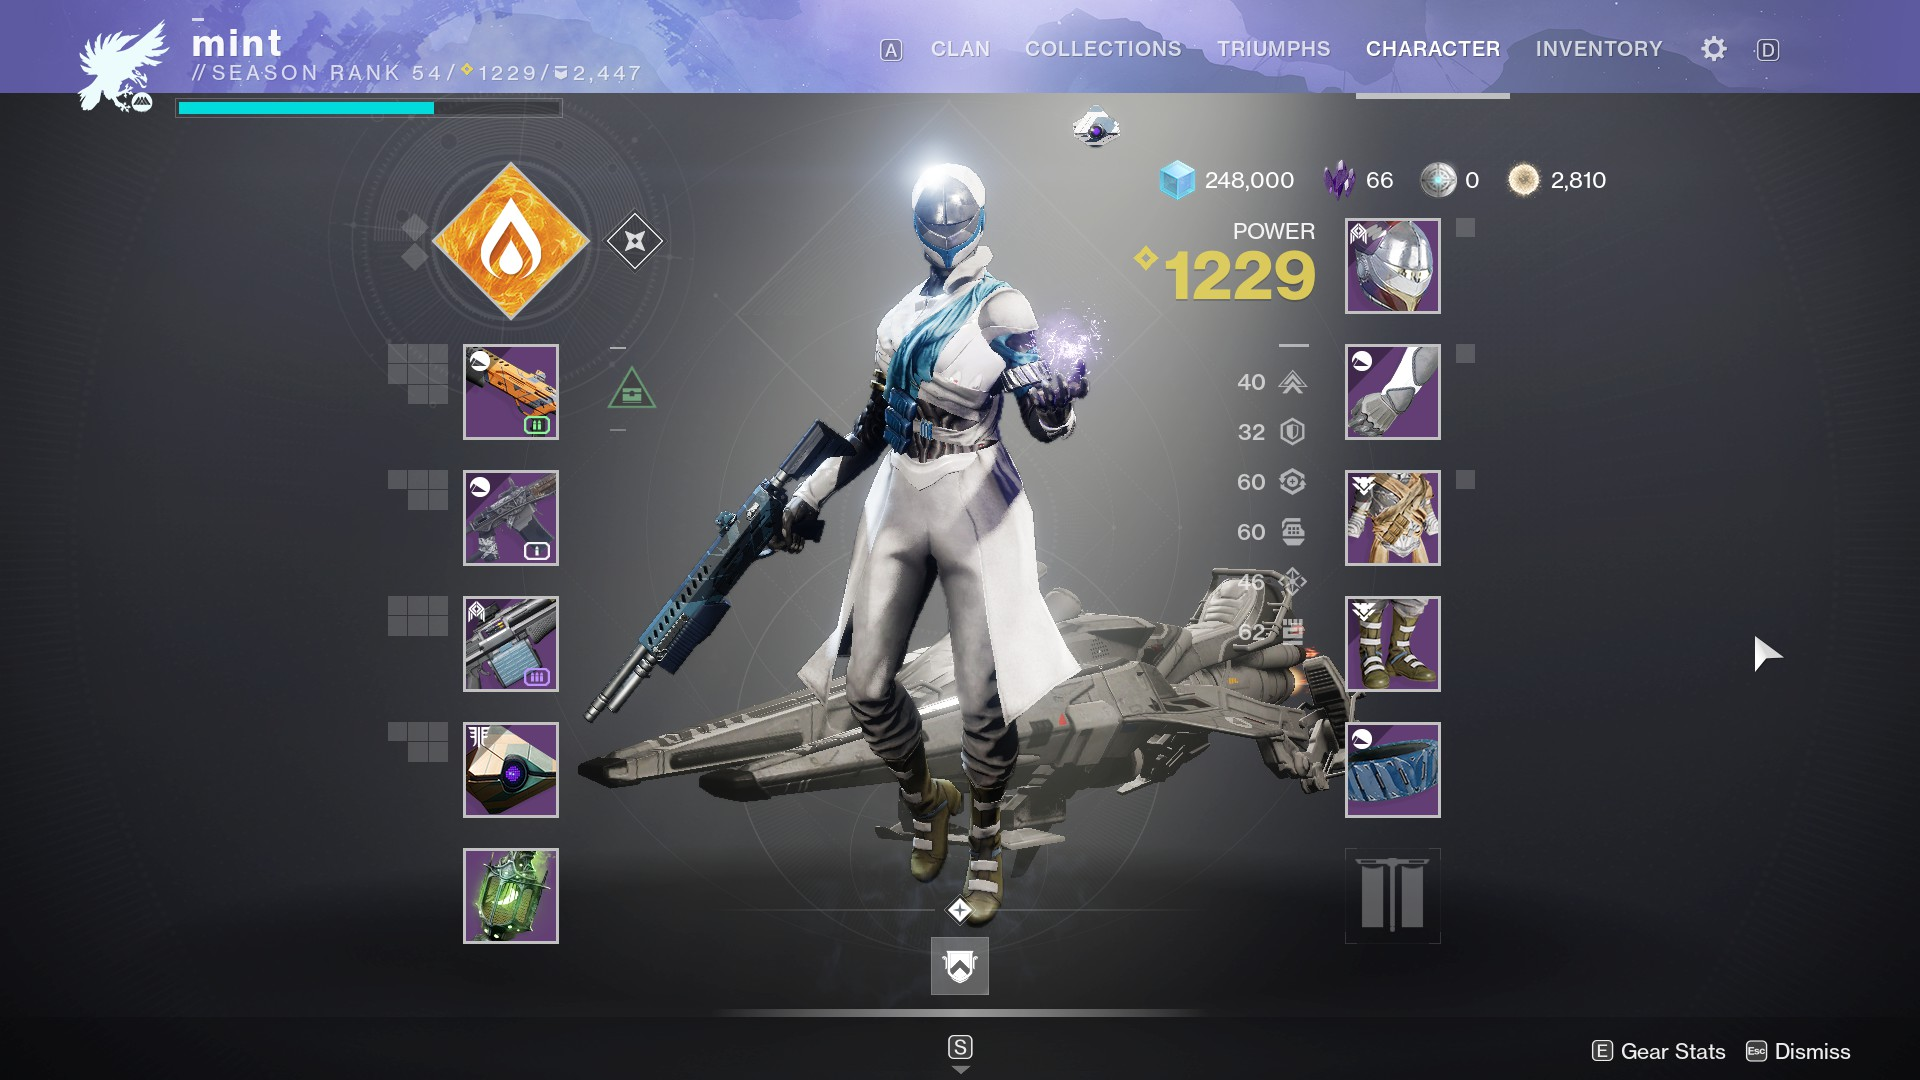 My Destiny game character.